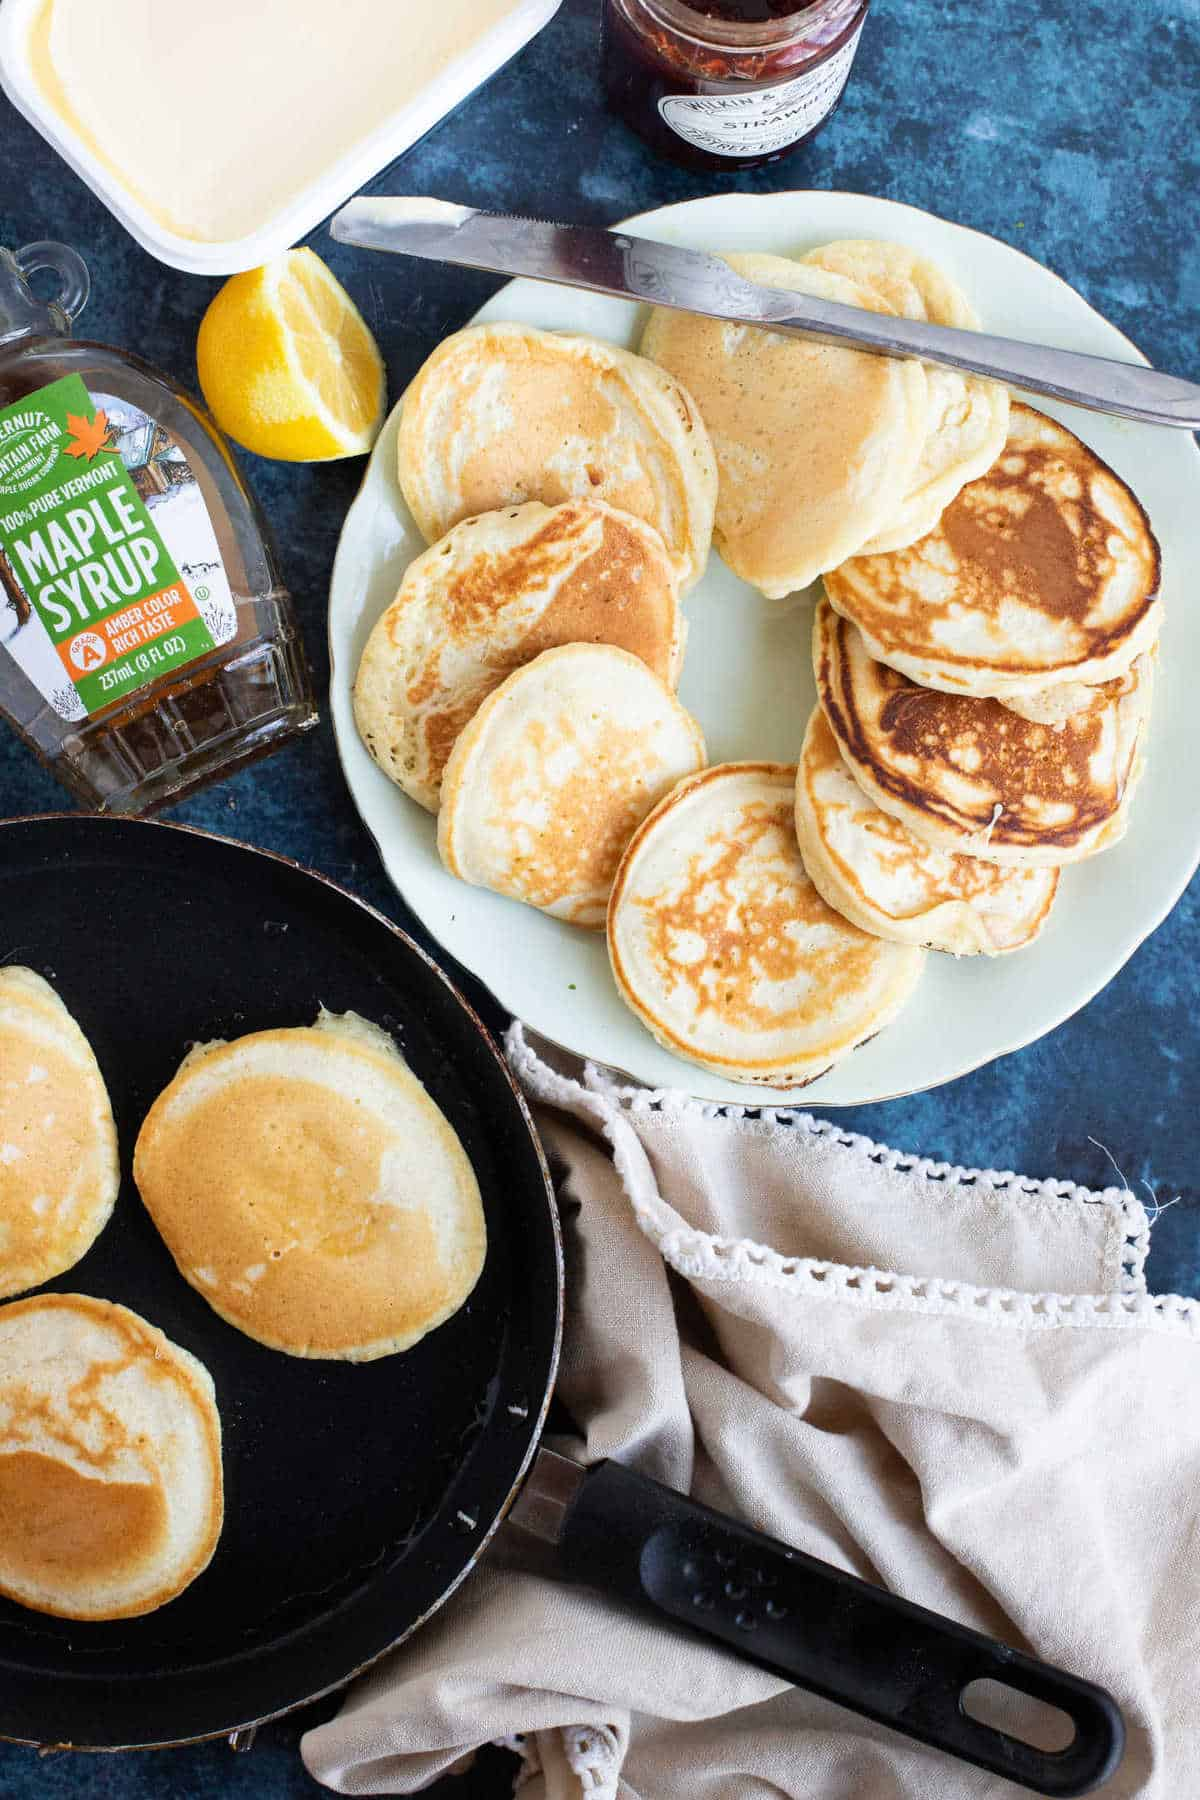 A plate of drop scones (scotch pancakes with maple syrup.